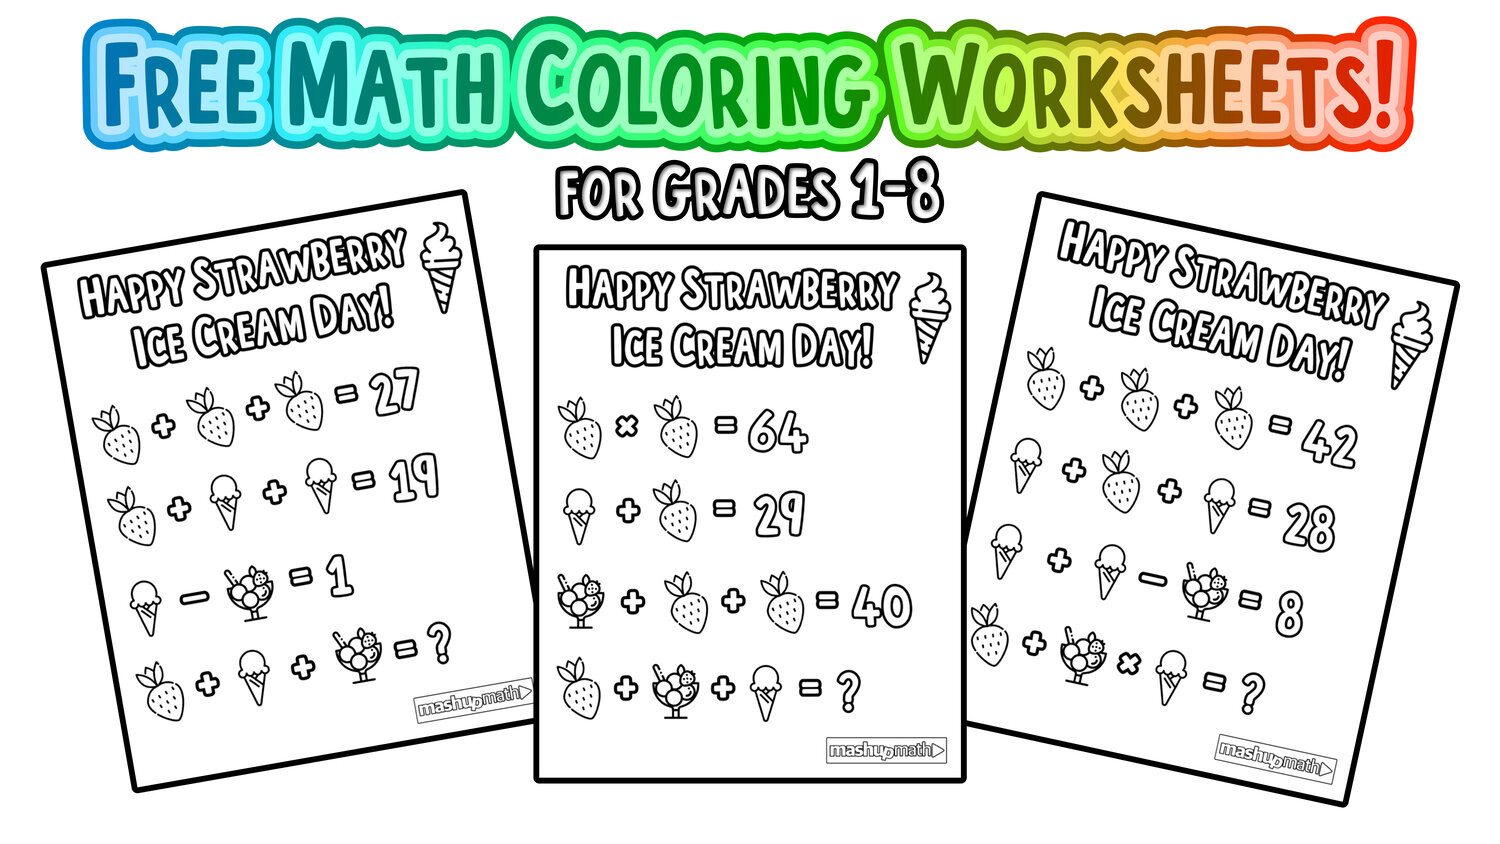 Middle School Math Puzzles Printable Free Math Coloring Pages for Grades 1 8 — Mashup Math